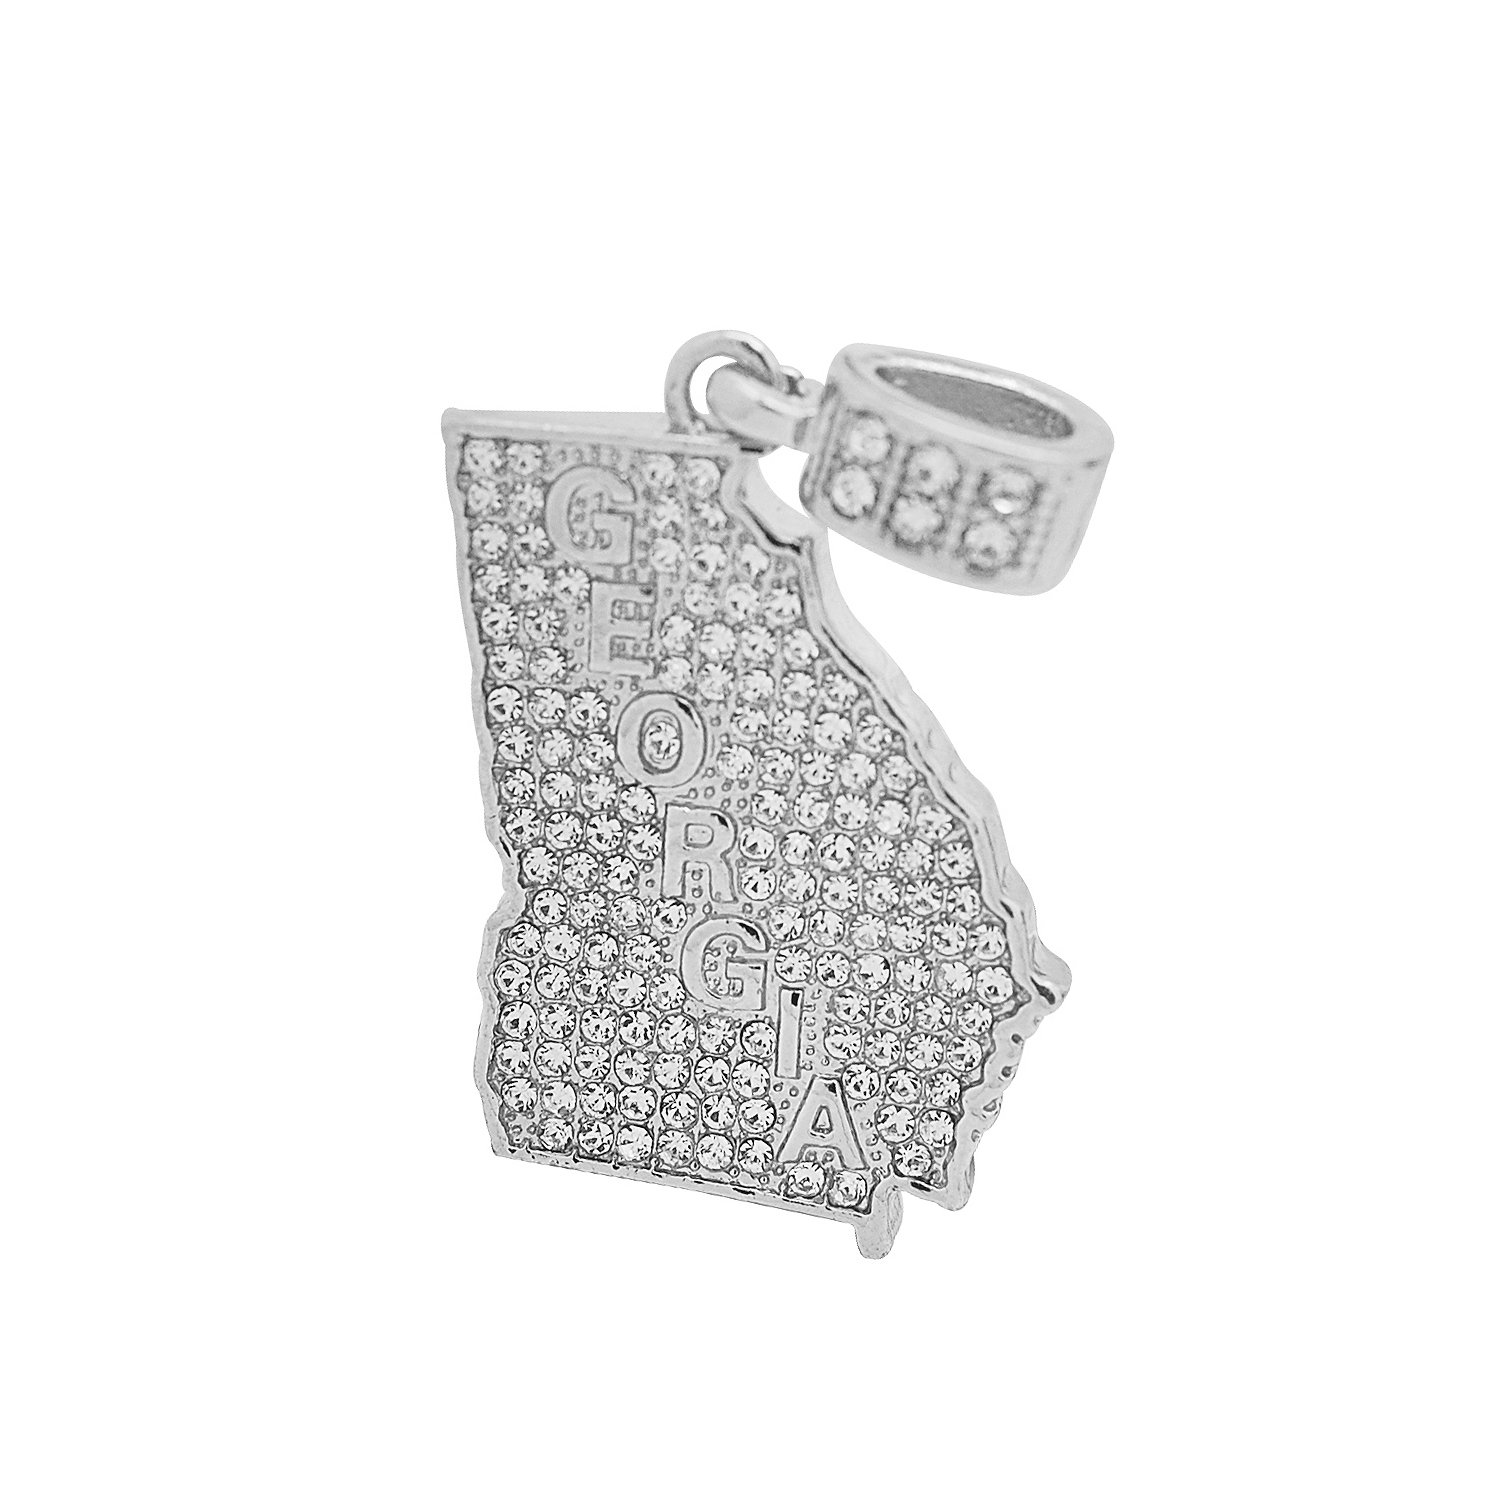 White Gold-Tone Hip Hop Bling Simulated Crystal Peach State Georgia Map Pendant with 18 Tennis Chain and 24 Rope Chain